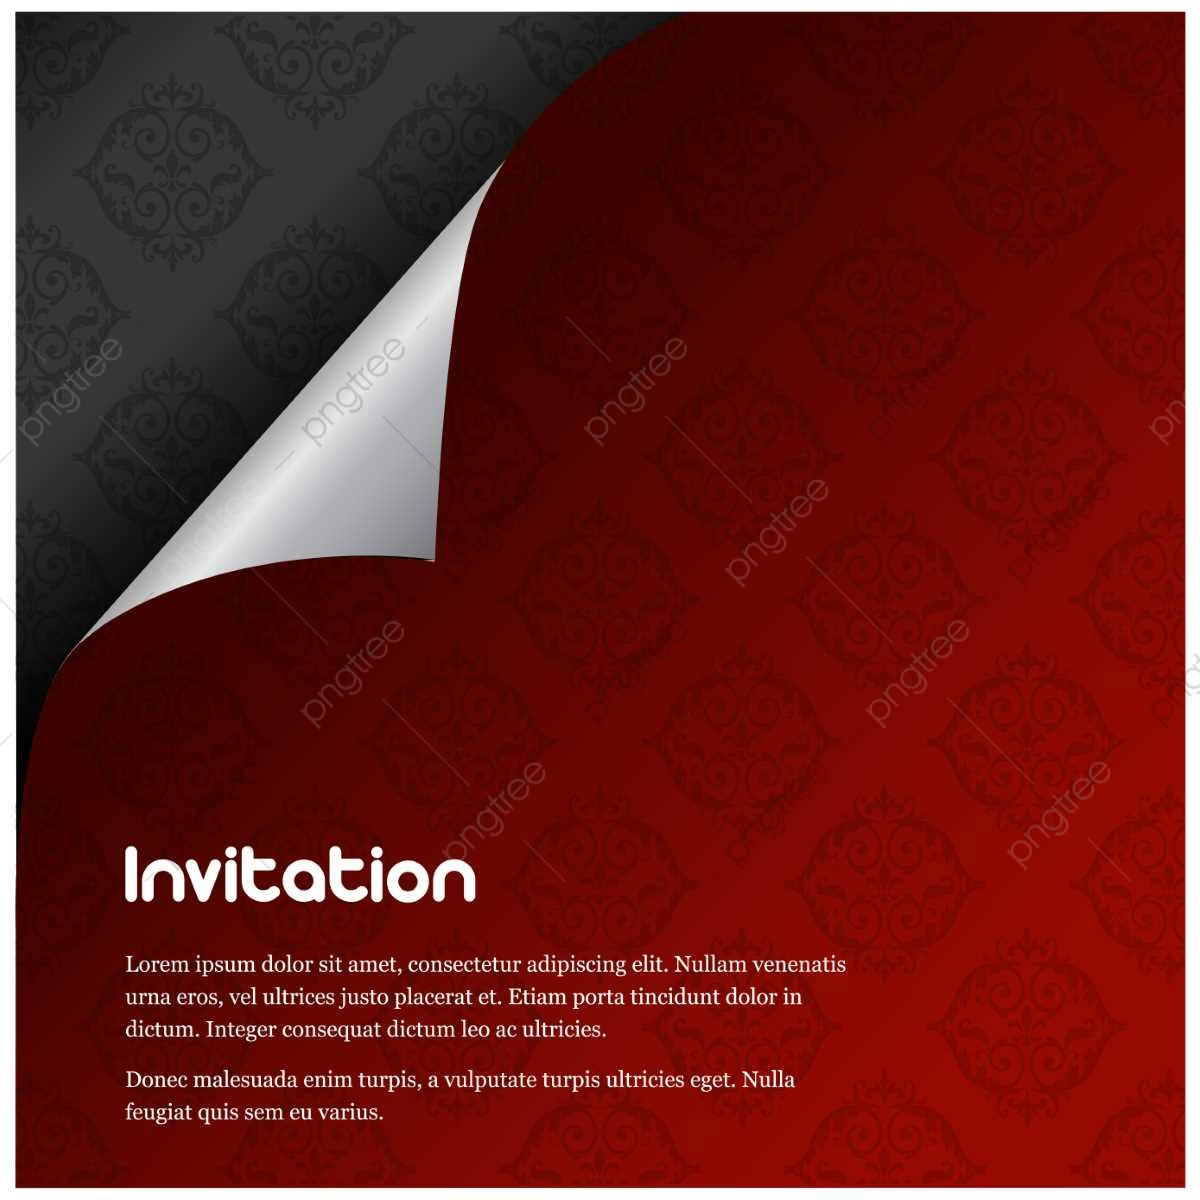 https pngtree com freepng invitation card design with red and black theme 3575033 html